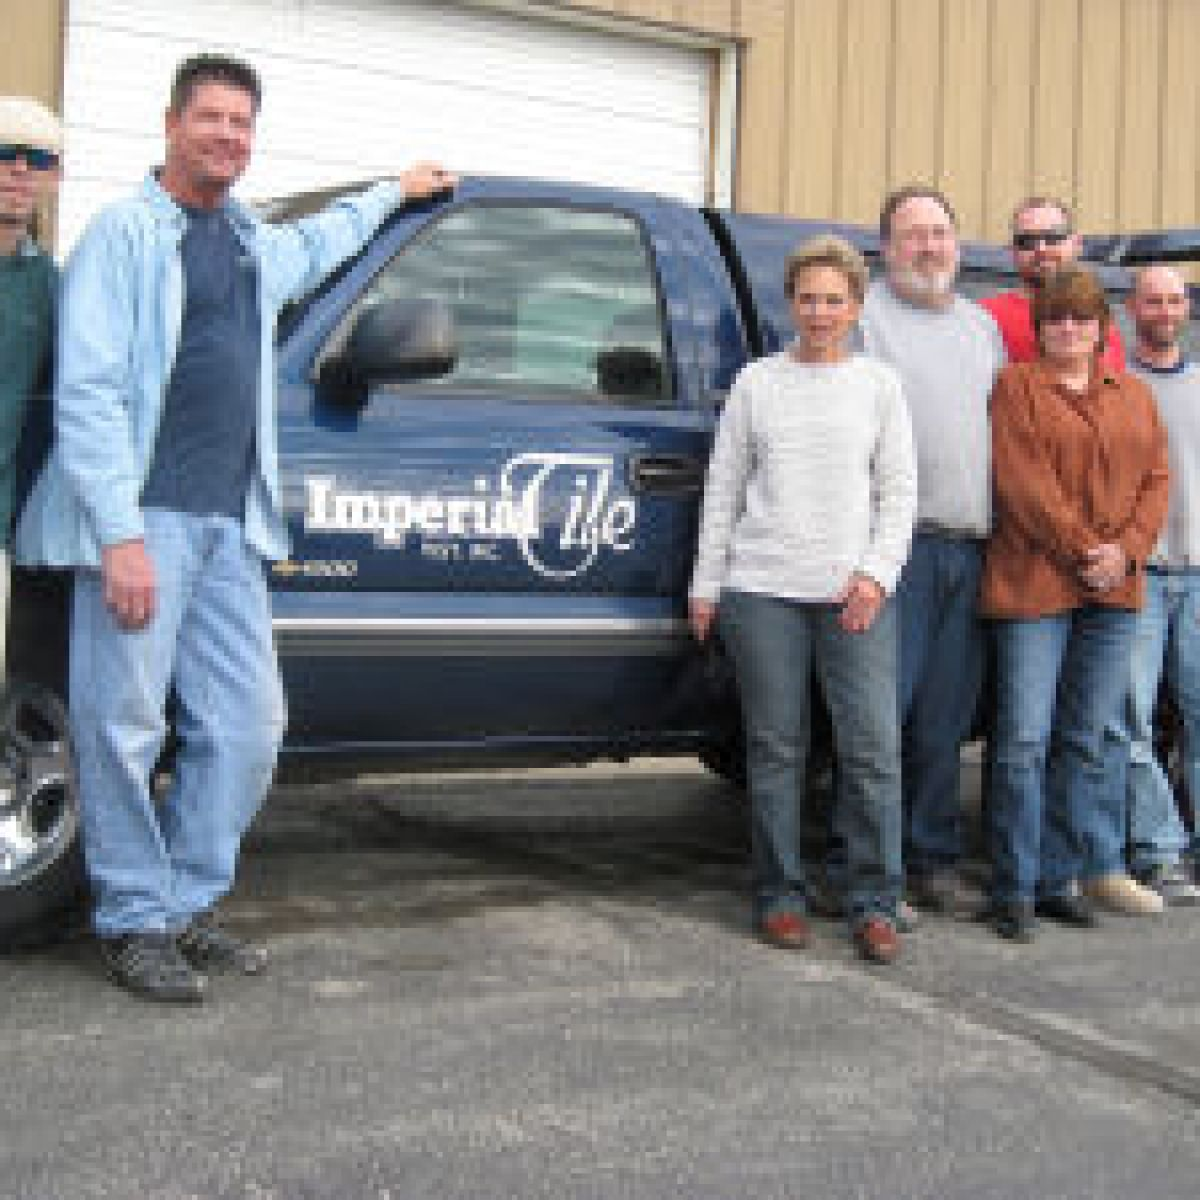 goodfellows tile is specialty of omaha